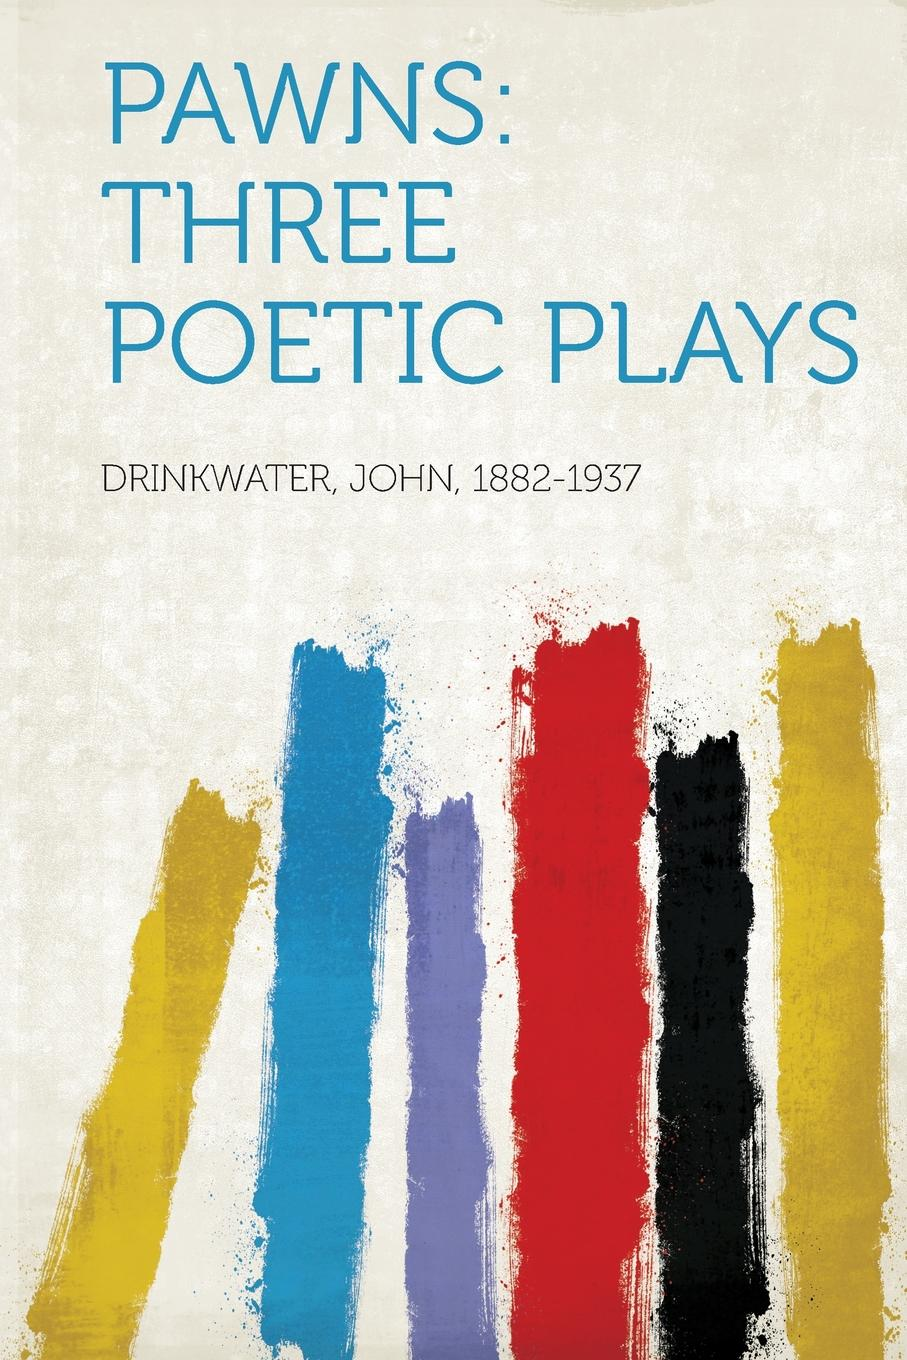 Drinkwater John 1882-1937 Pawns. Three Poetic Plays